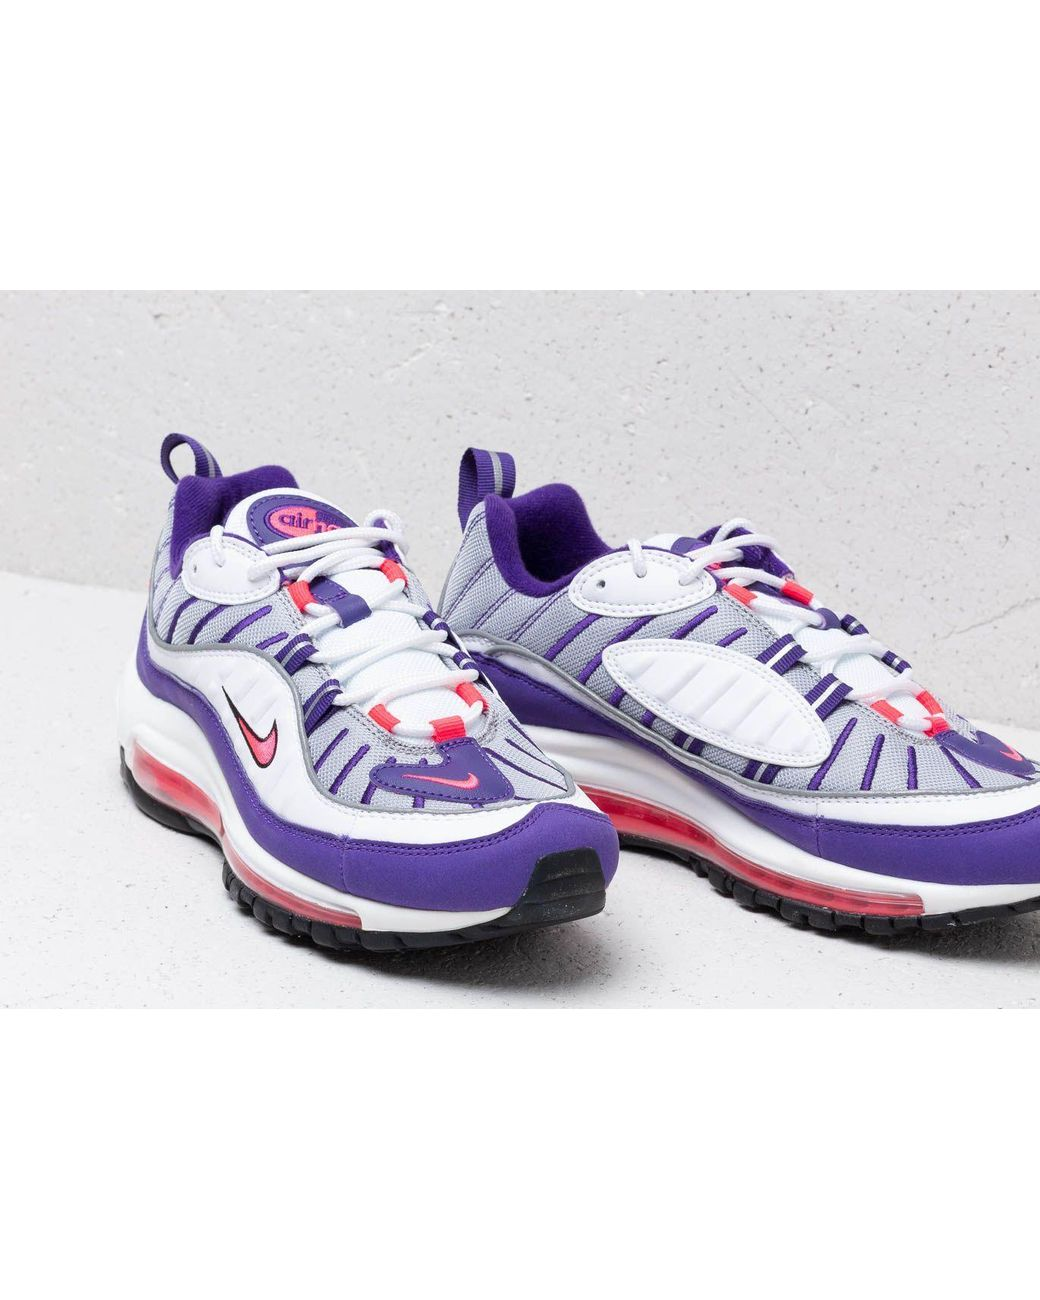 lowest price 15e7c 83a8a Nike W Air Max 98 White  Racer Pink-reflect Silver-black in White - Lyst